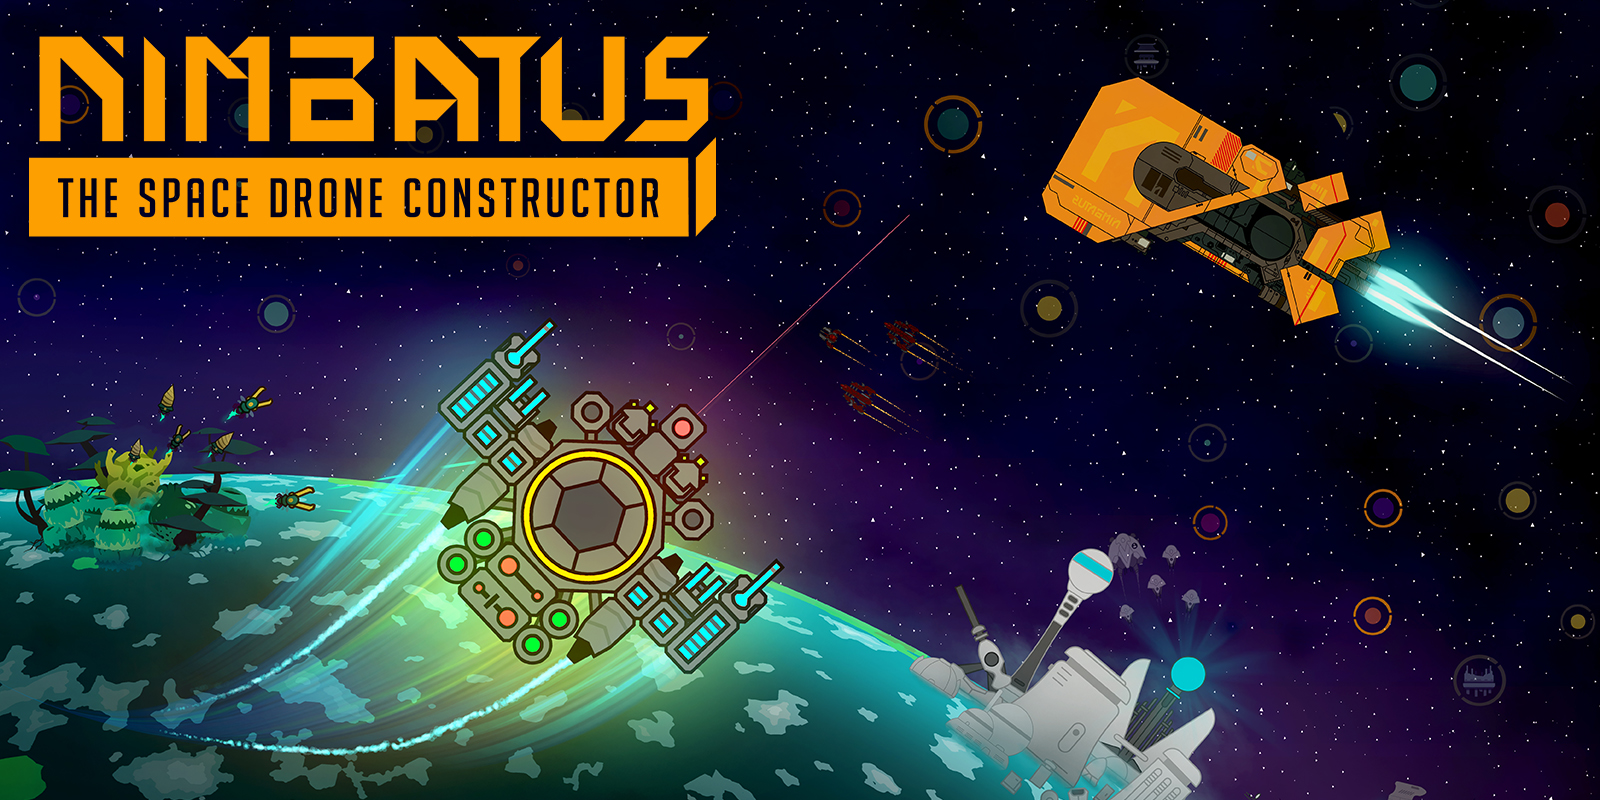 Nimbatus – The Space Drone Constructor